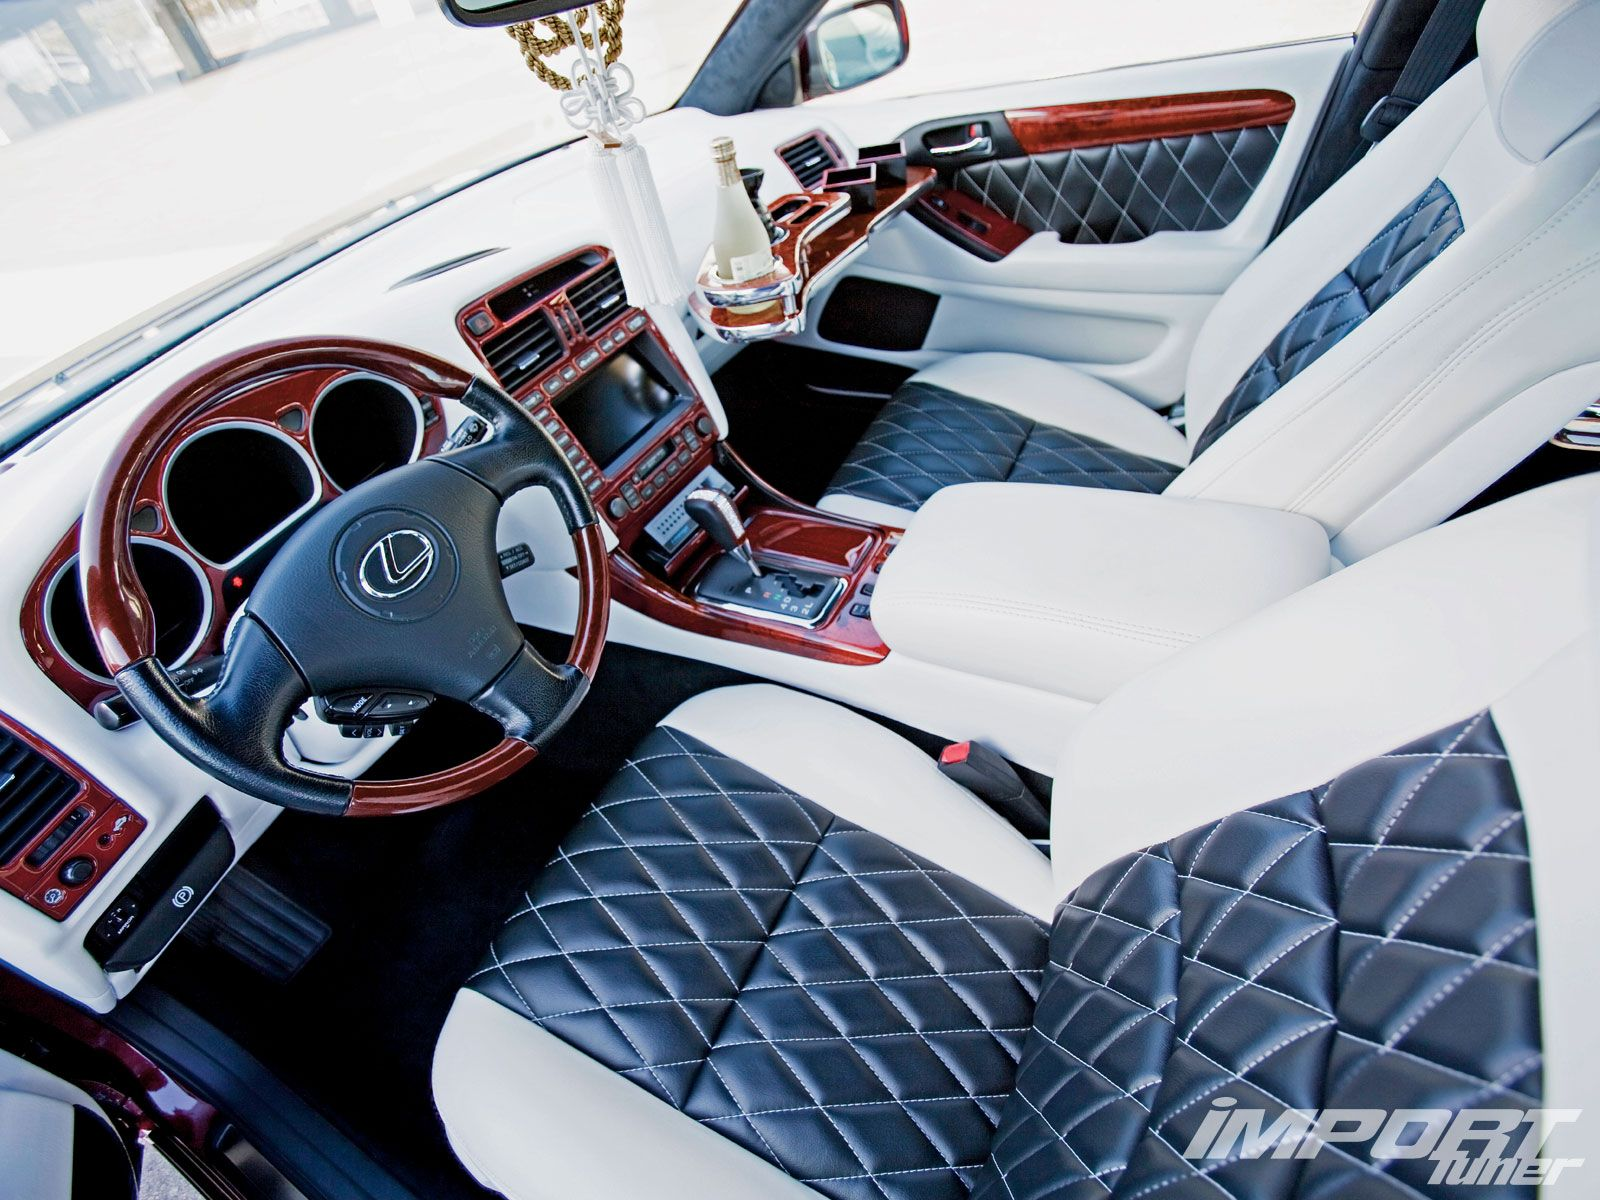 impp_1012_03_o+2001_lexus_gs430+diamond_stitch_seats